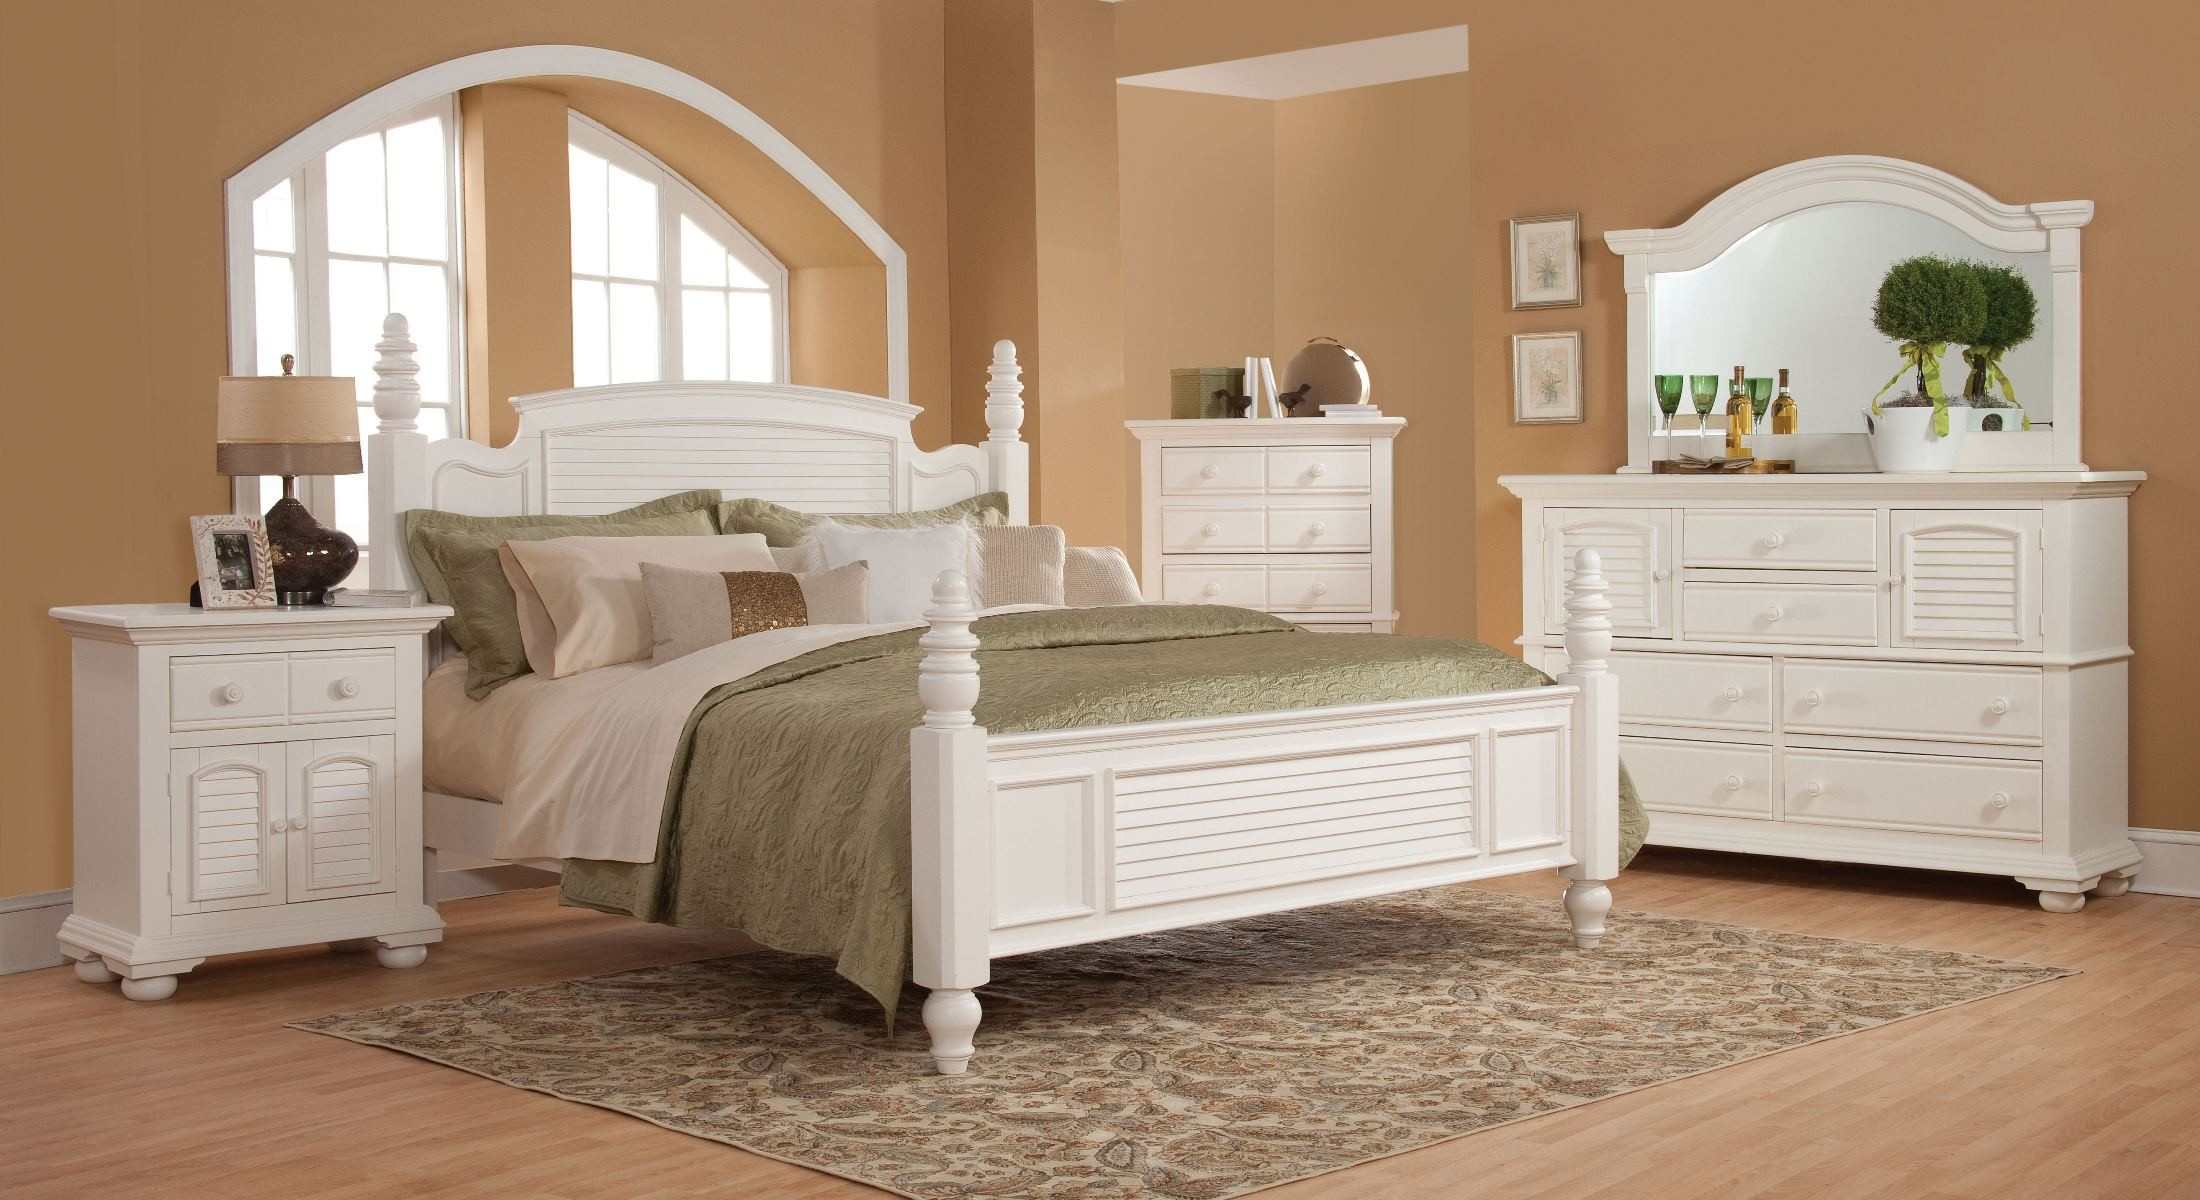 Cottage Traditions White Poster Bedroom Set 6510 50POS American Woodcrafter